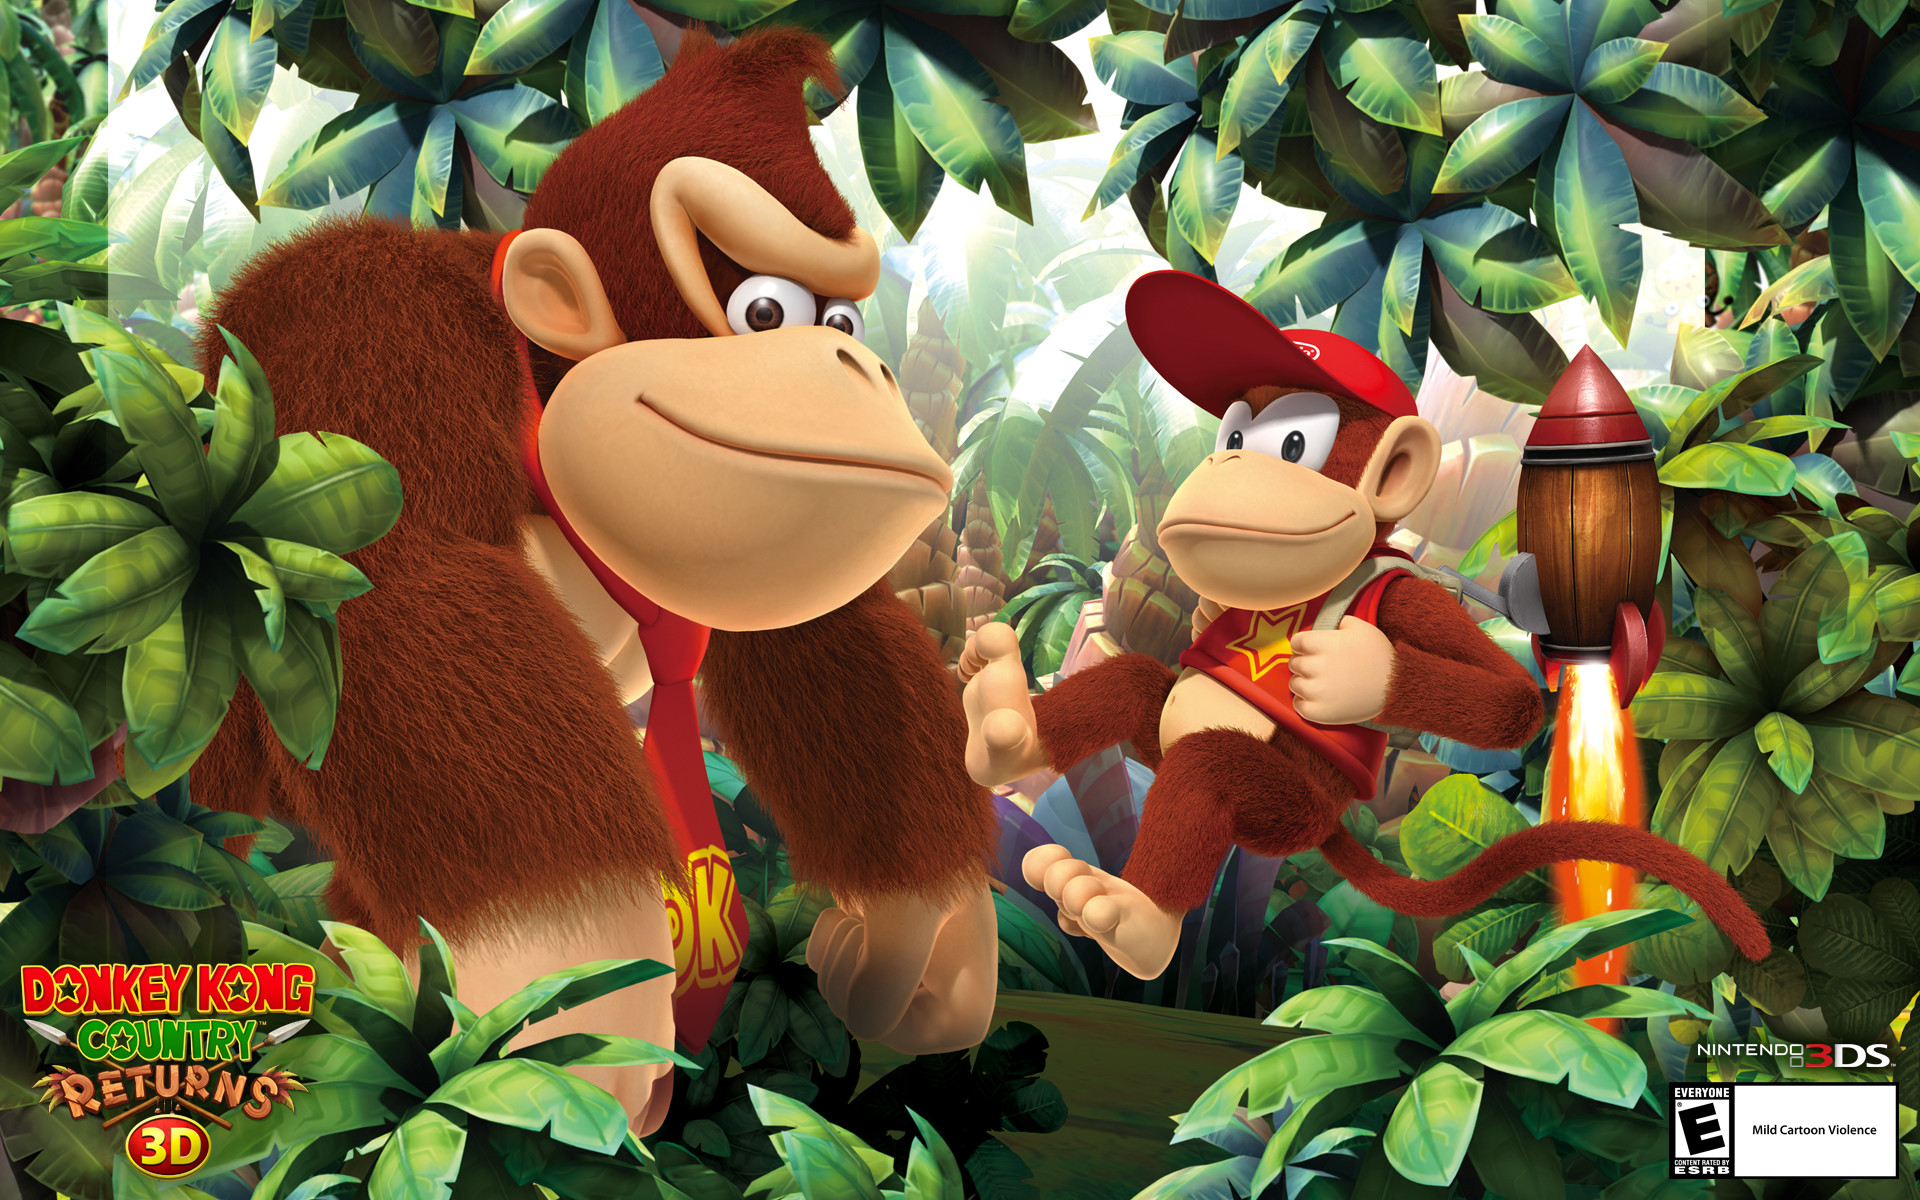 Wallpapers Donkey Kong Country Returns D for Nintendo DS